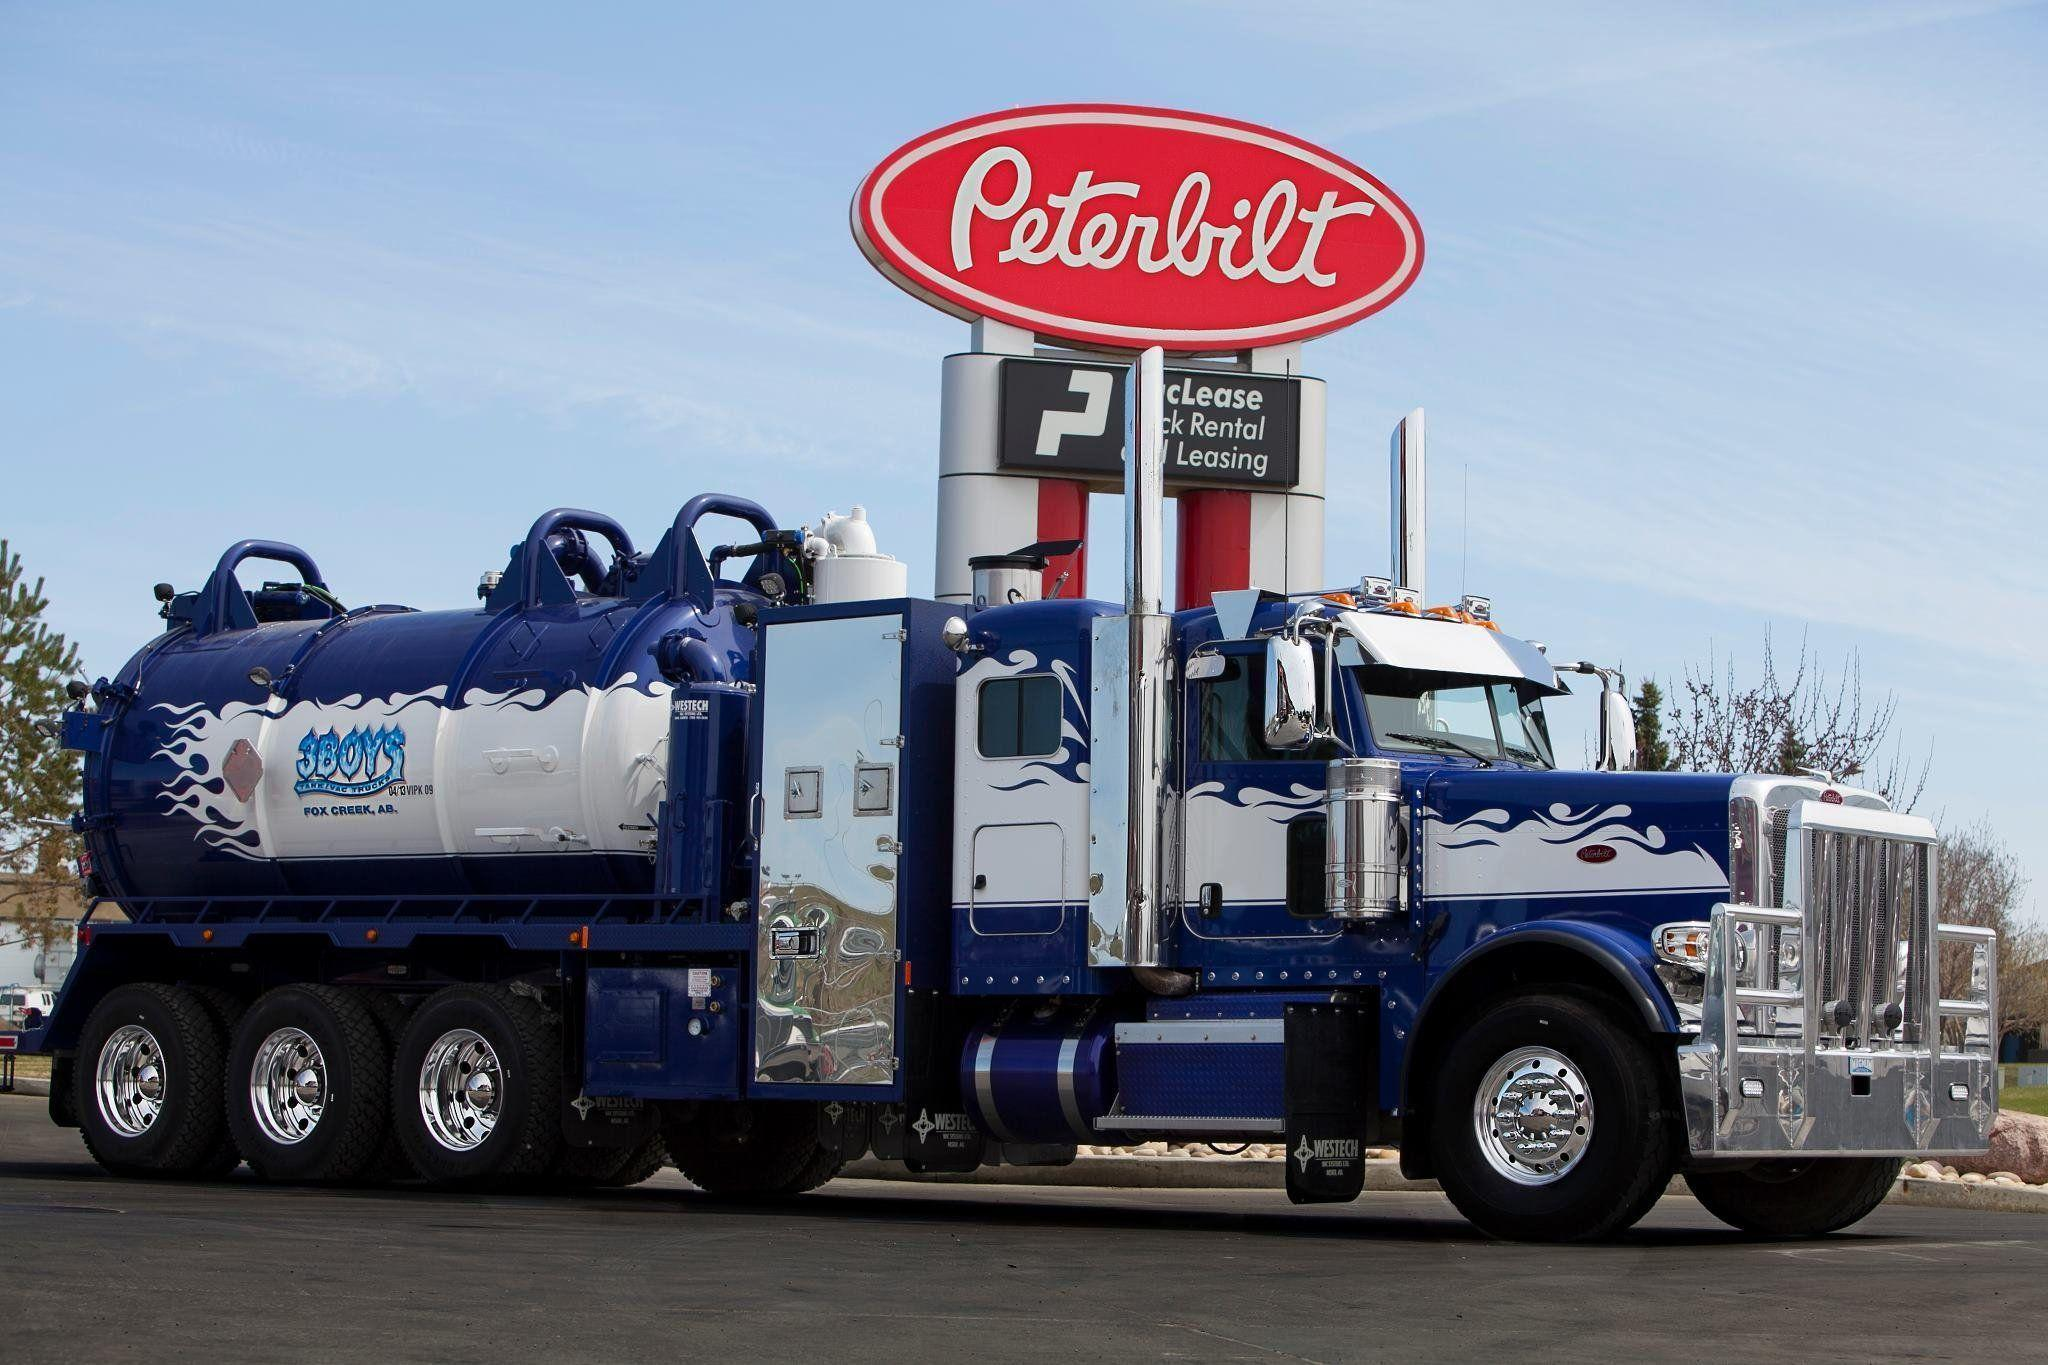 Peterbilt wallpaper | 4272x2848 | 195692 | WallpaperUP